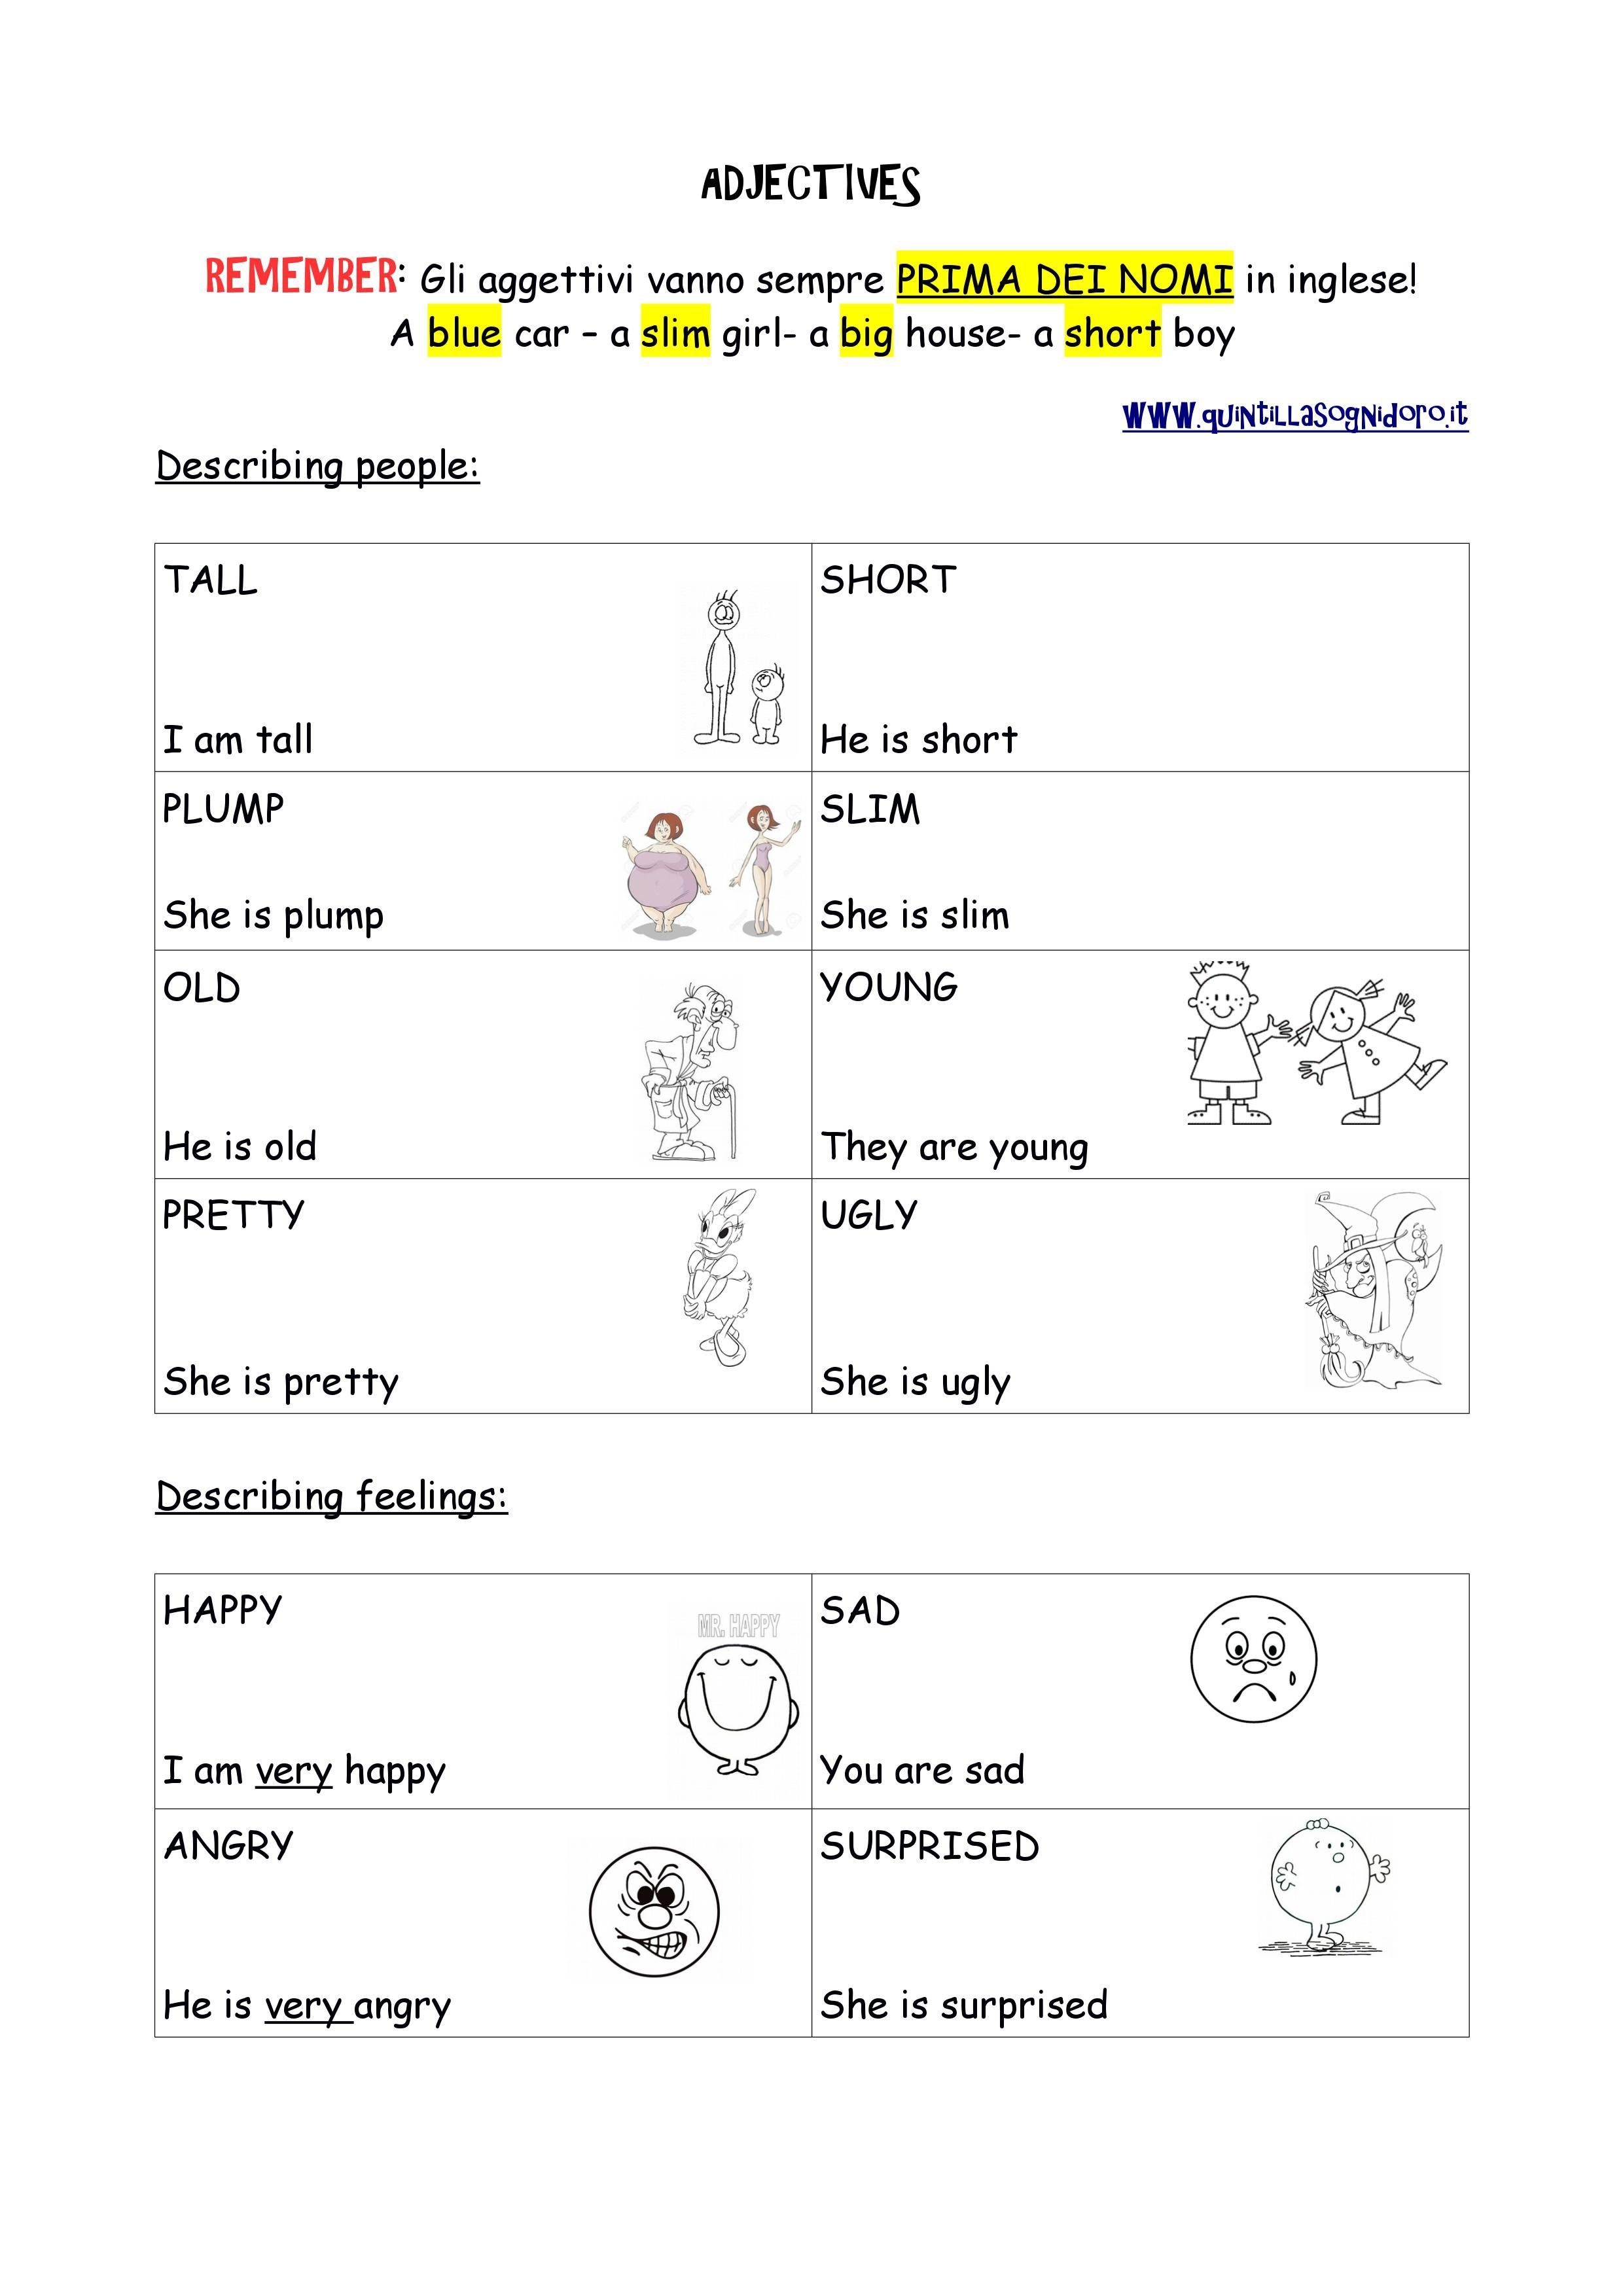 Aggettivi In Inglese Livello A2 Adjectives For Kids